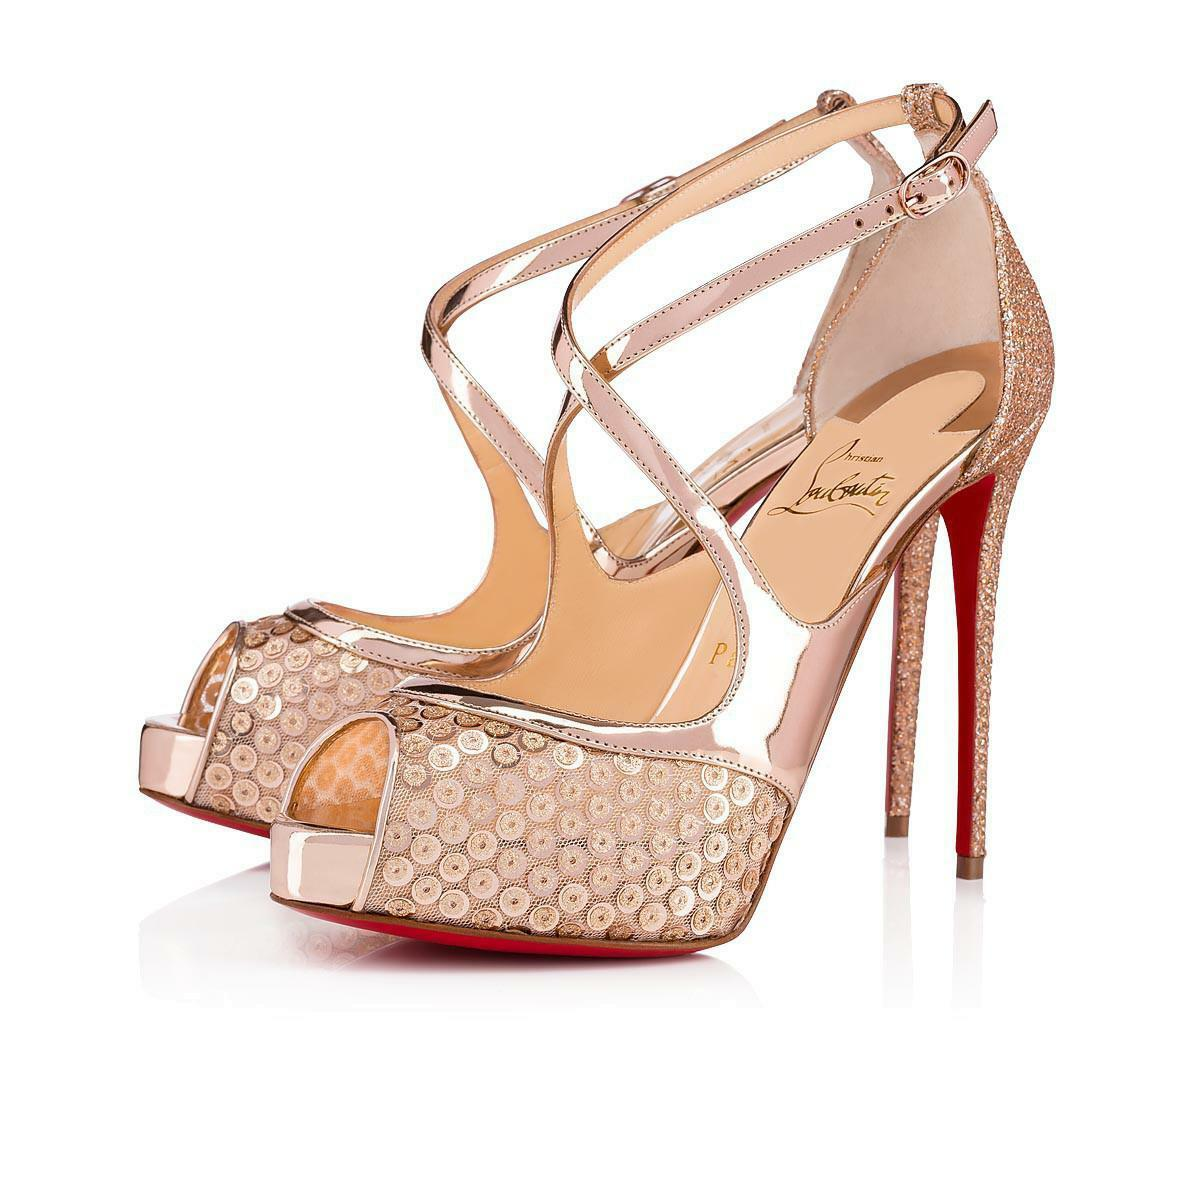 NIB Christian Louboutin Mira Bella 120 Nude or or or Sequin Platform Heel Pump 38 44587a